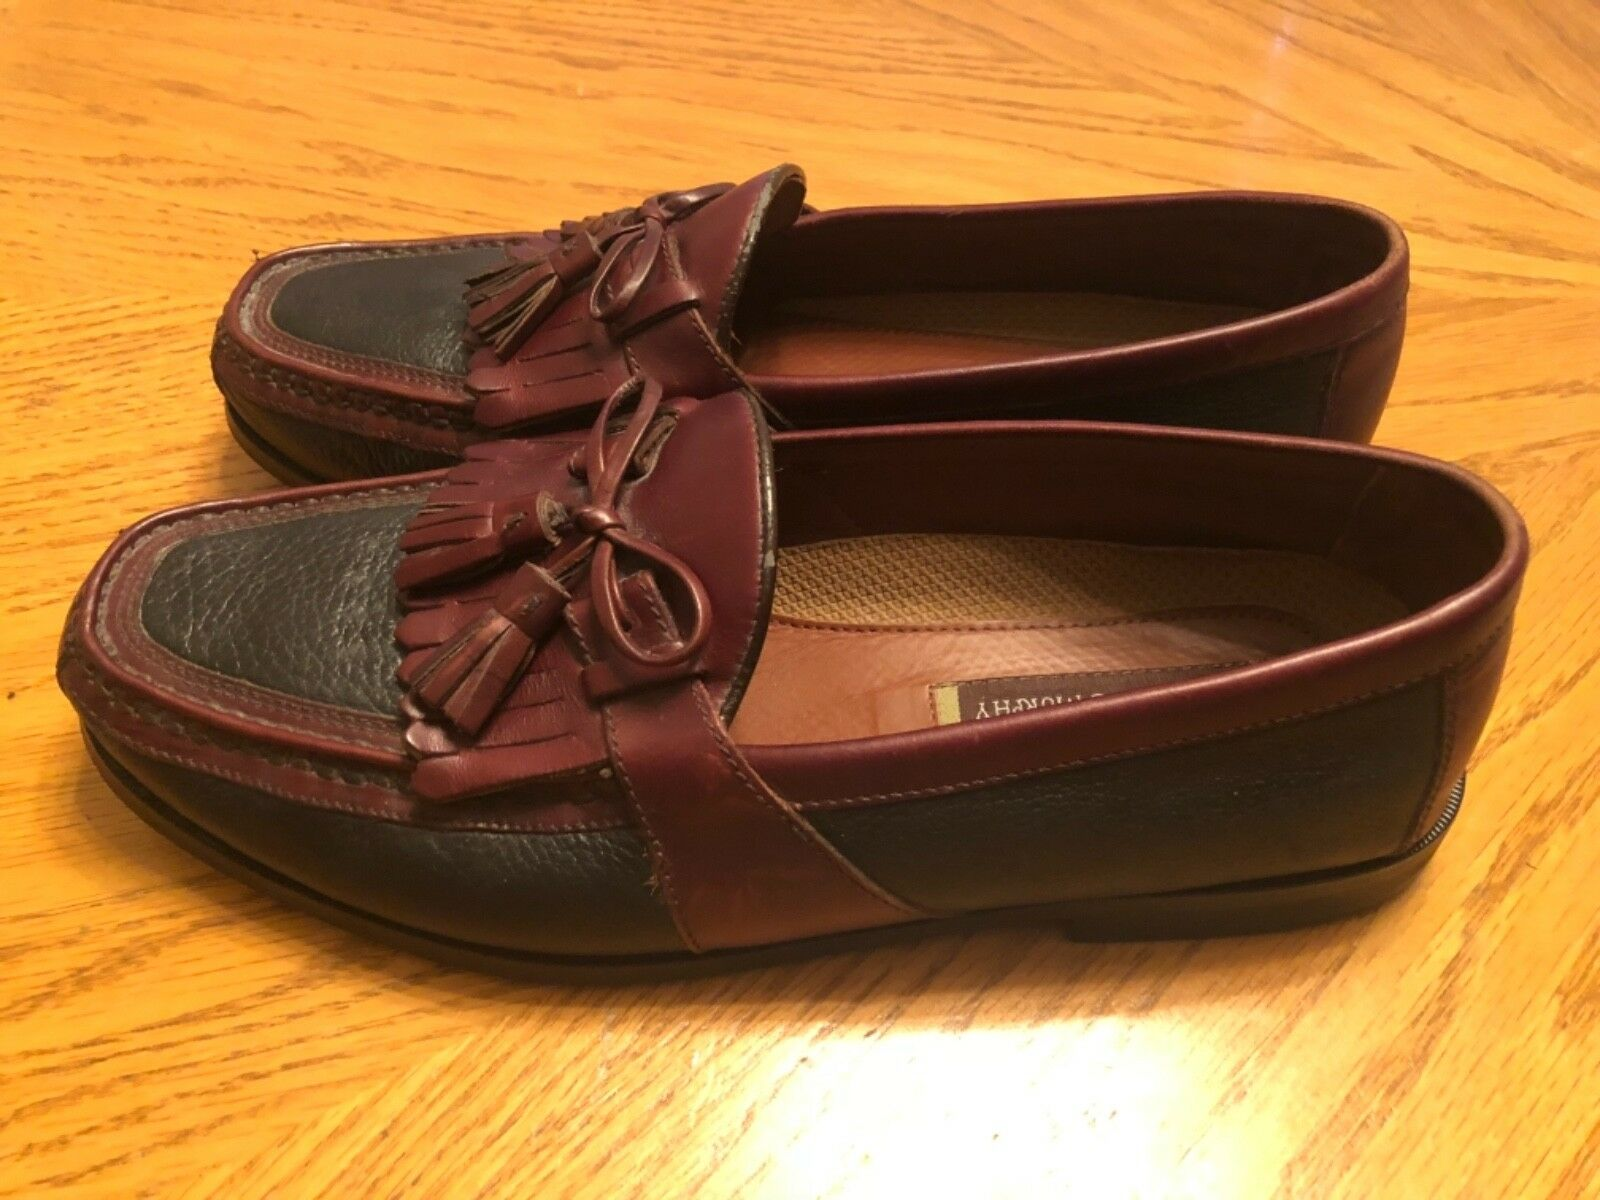 Johnston & Murphy Tassel Loafers Brown & Black Size 10.5M